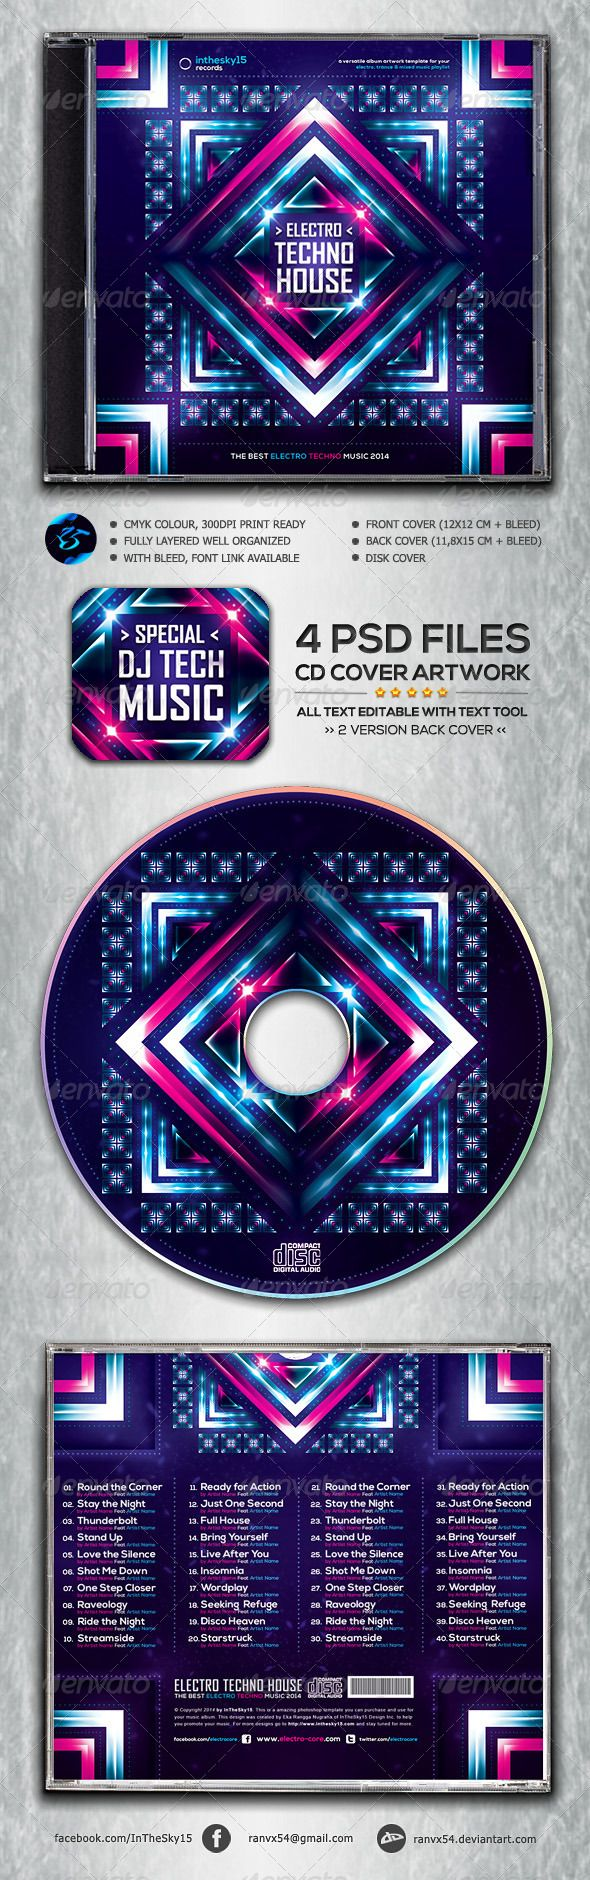 Electro Techno House CD Album Artwork — Photoshop PSD #cover #digipack • Available here → https://graphicriver.net/item/electro-techno-house-cd-album-artwork/6974100?ref=pxcr